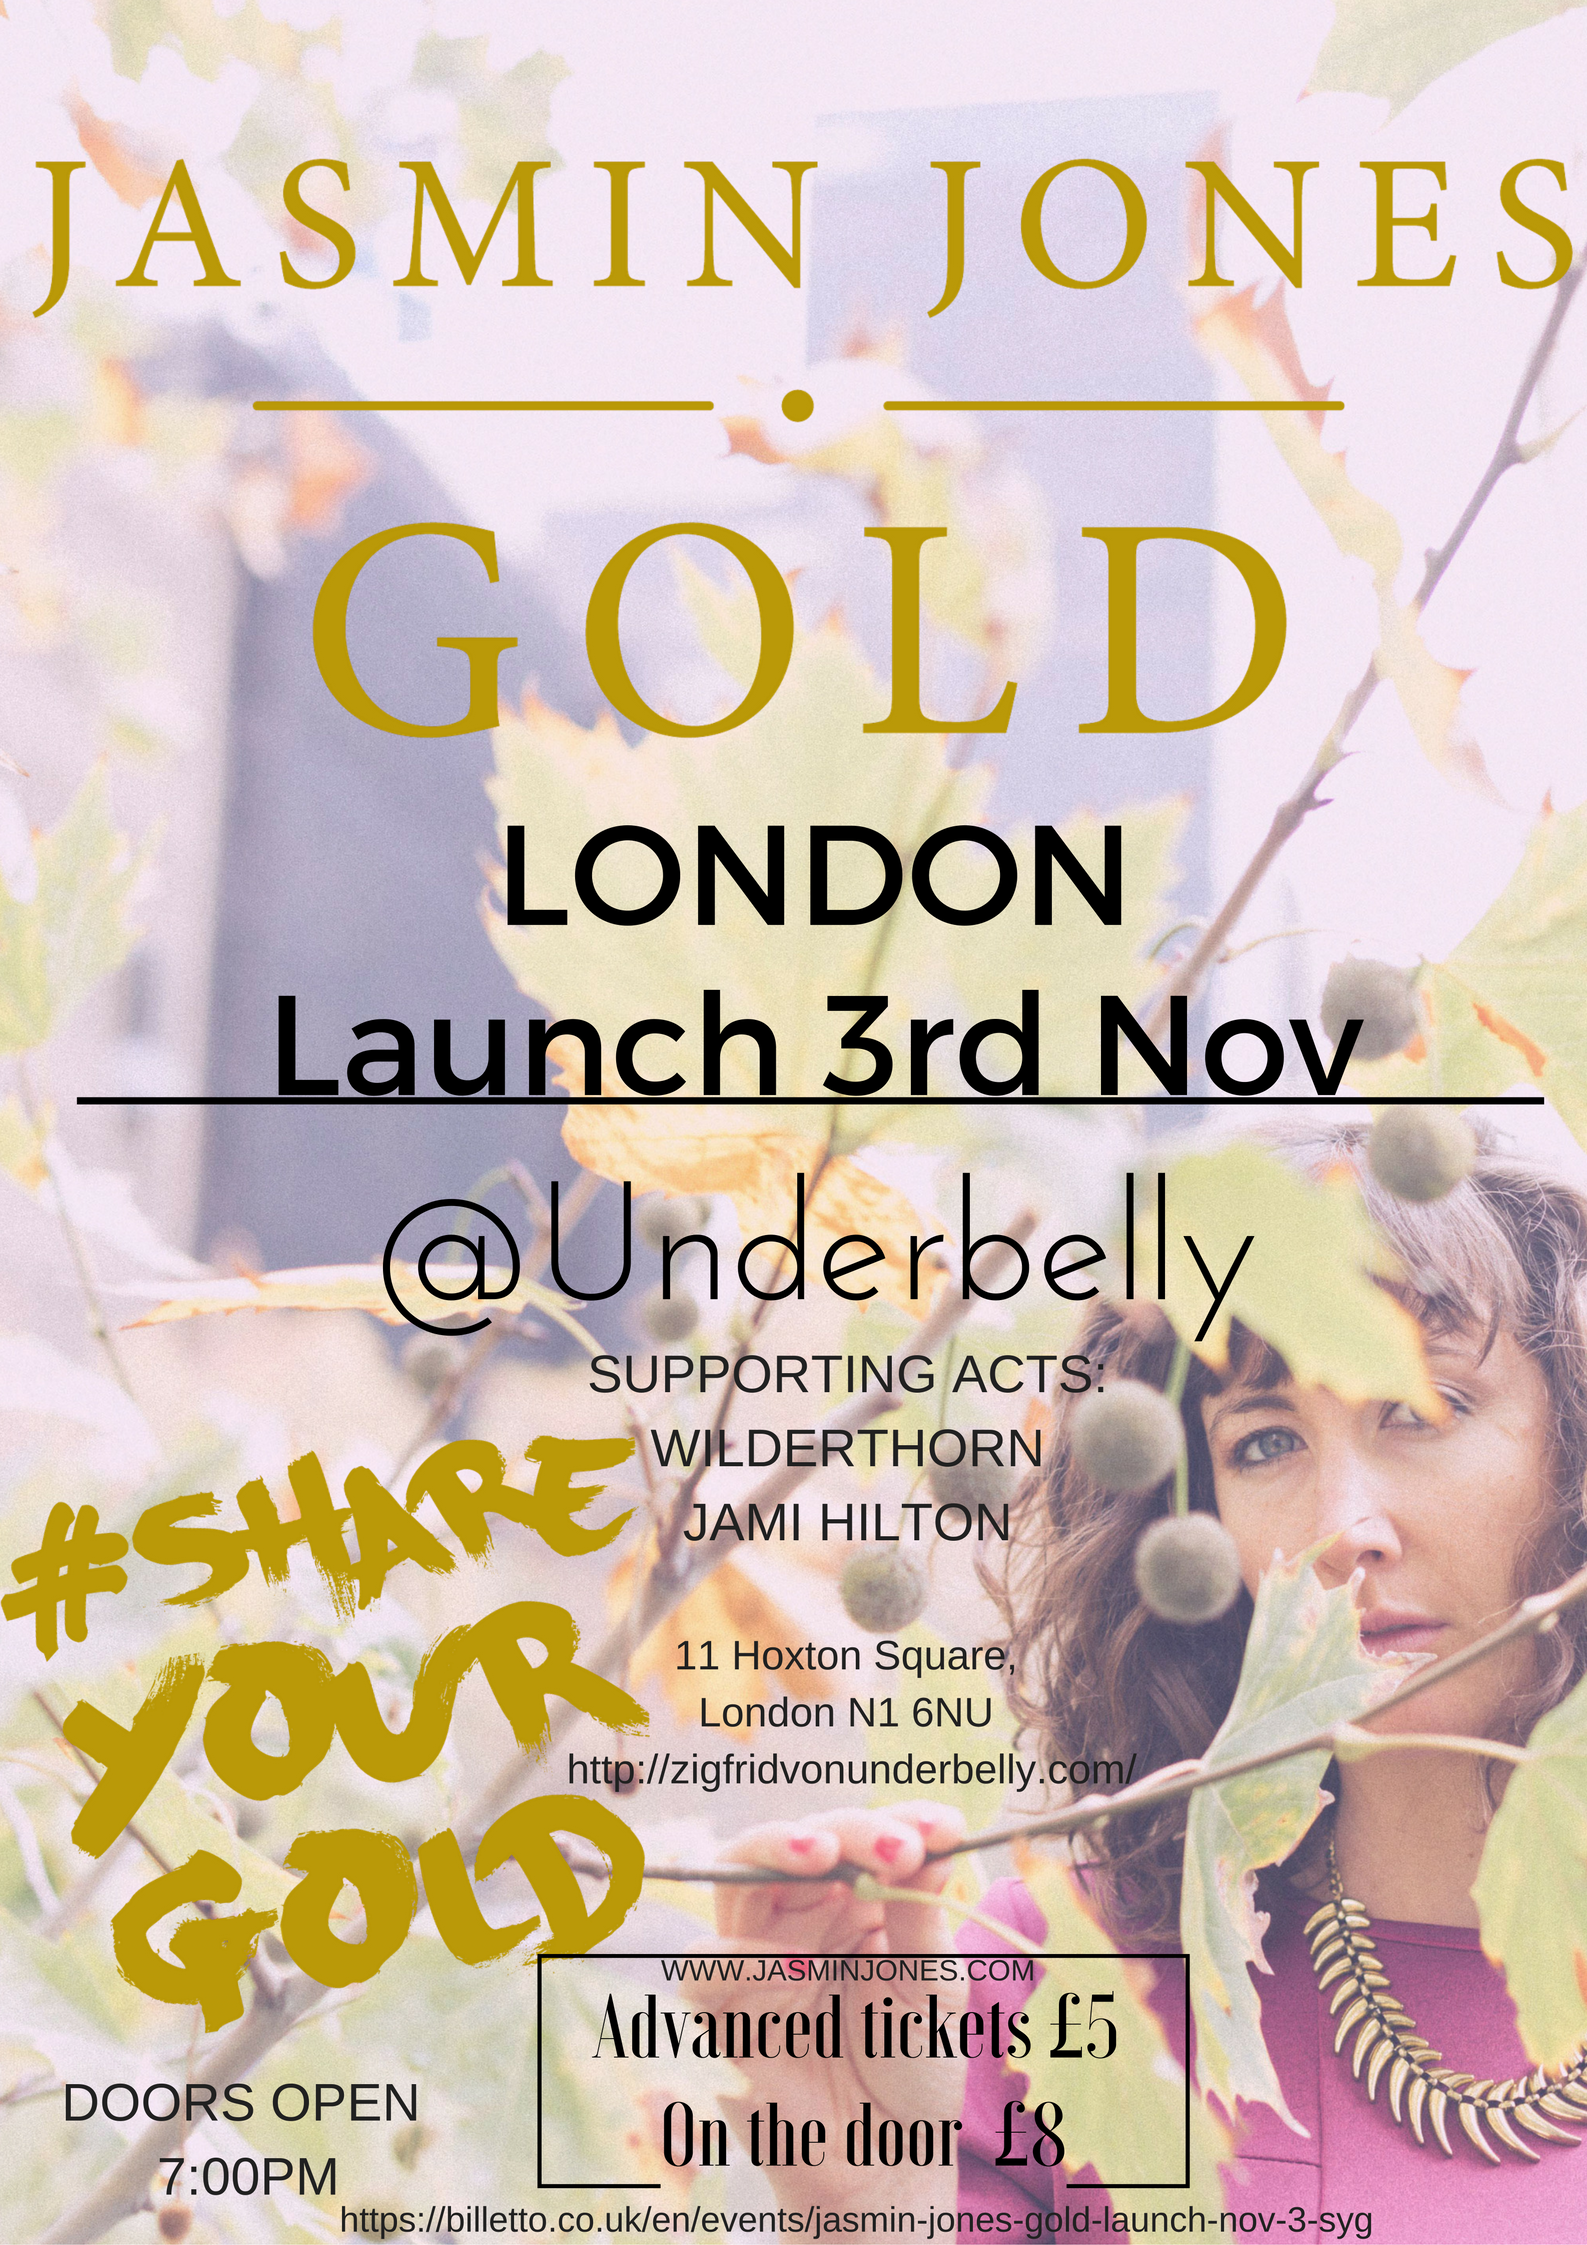 #SYG / GOLD London Launch 3rd Nov